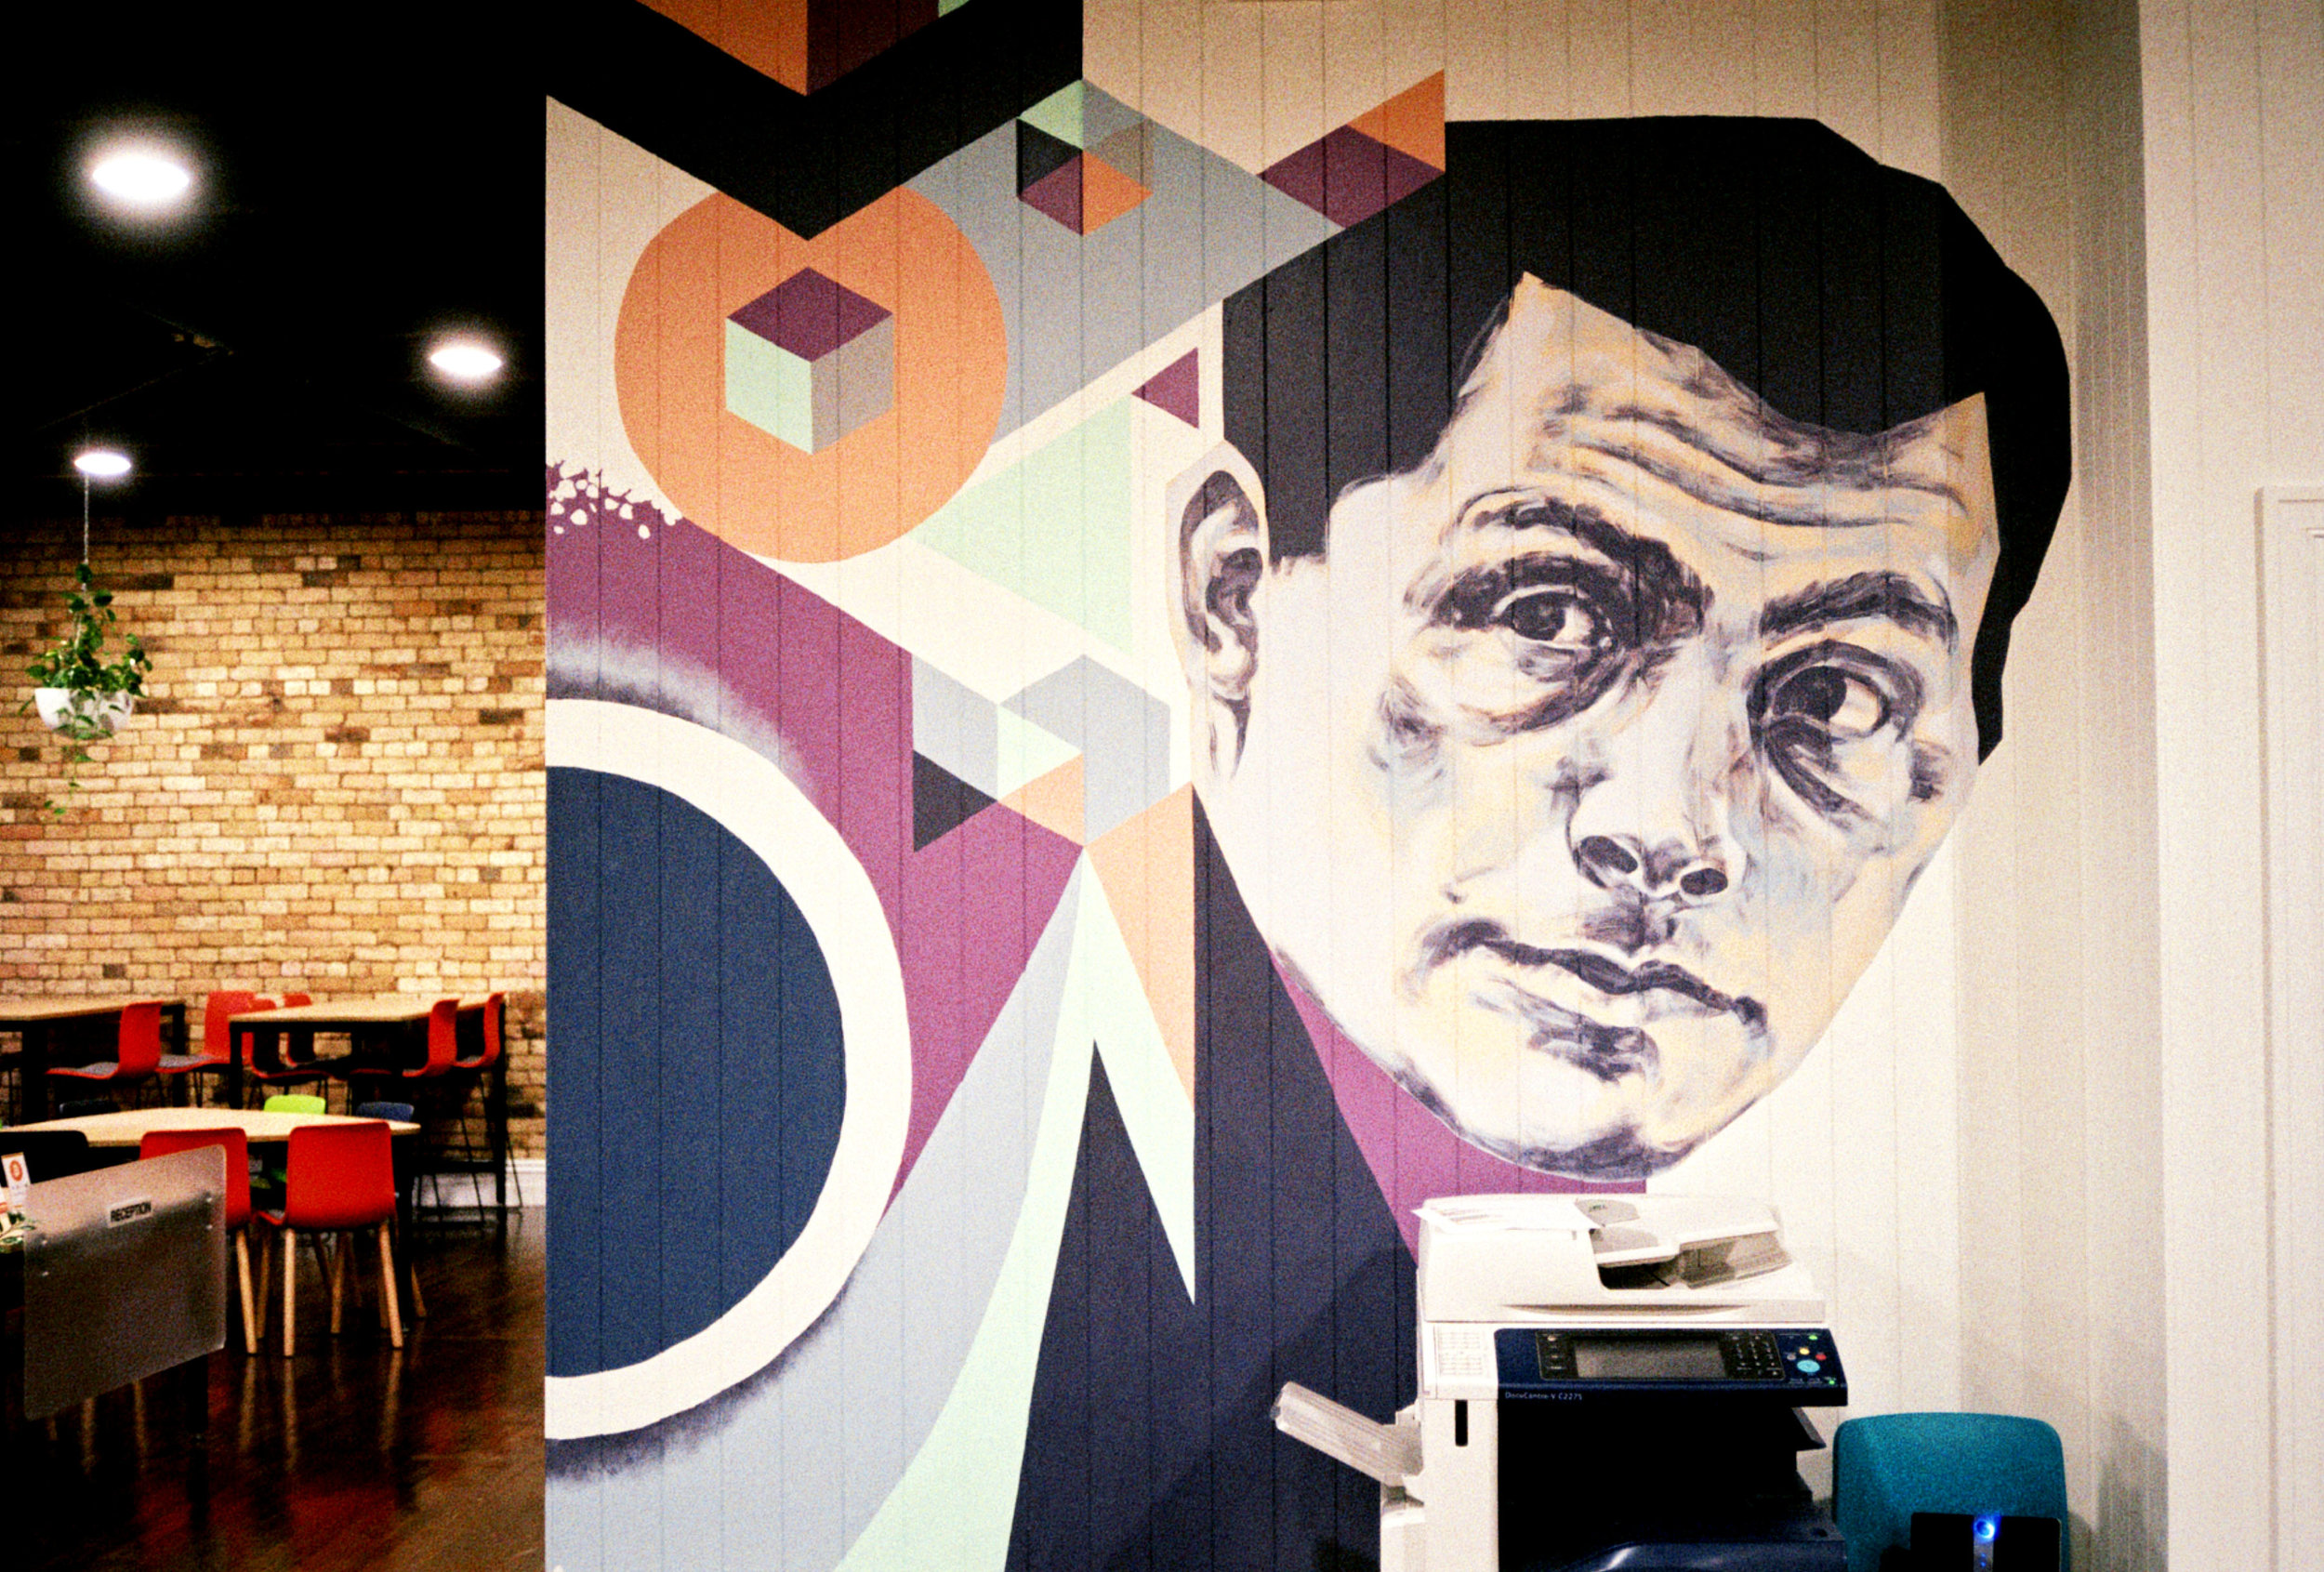 WE OFFER COMPLETE ART SOLUTIONS - OUR MURALS EXTEND FAR BEYOND STANDARD SIZES & STYLES